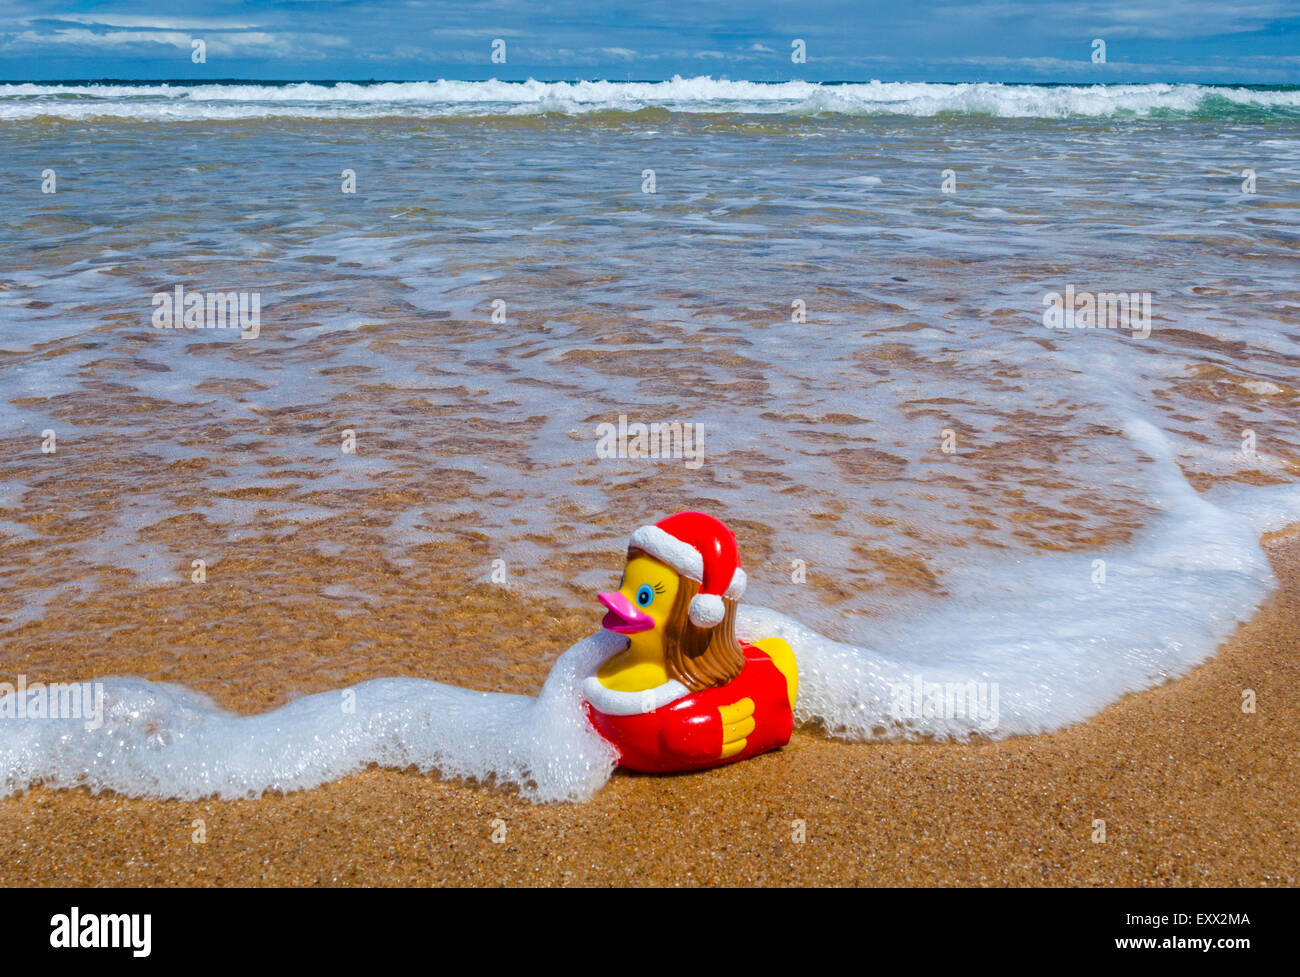 Rubber Duck Beach Stockfotos & Rubber Duck Beach Bilder - Alamy